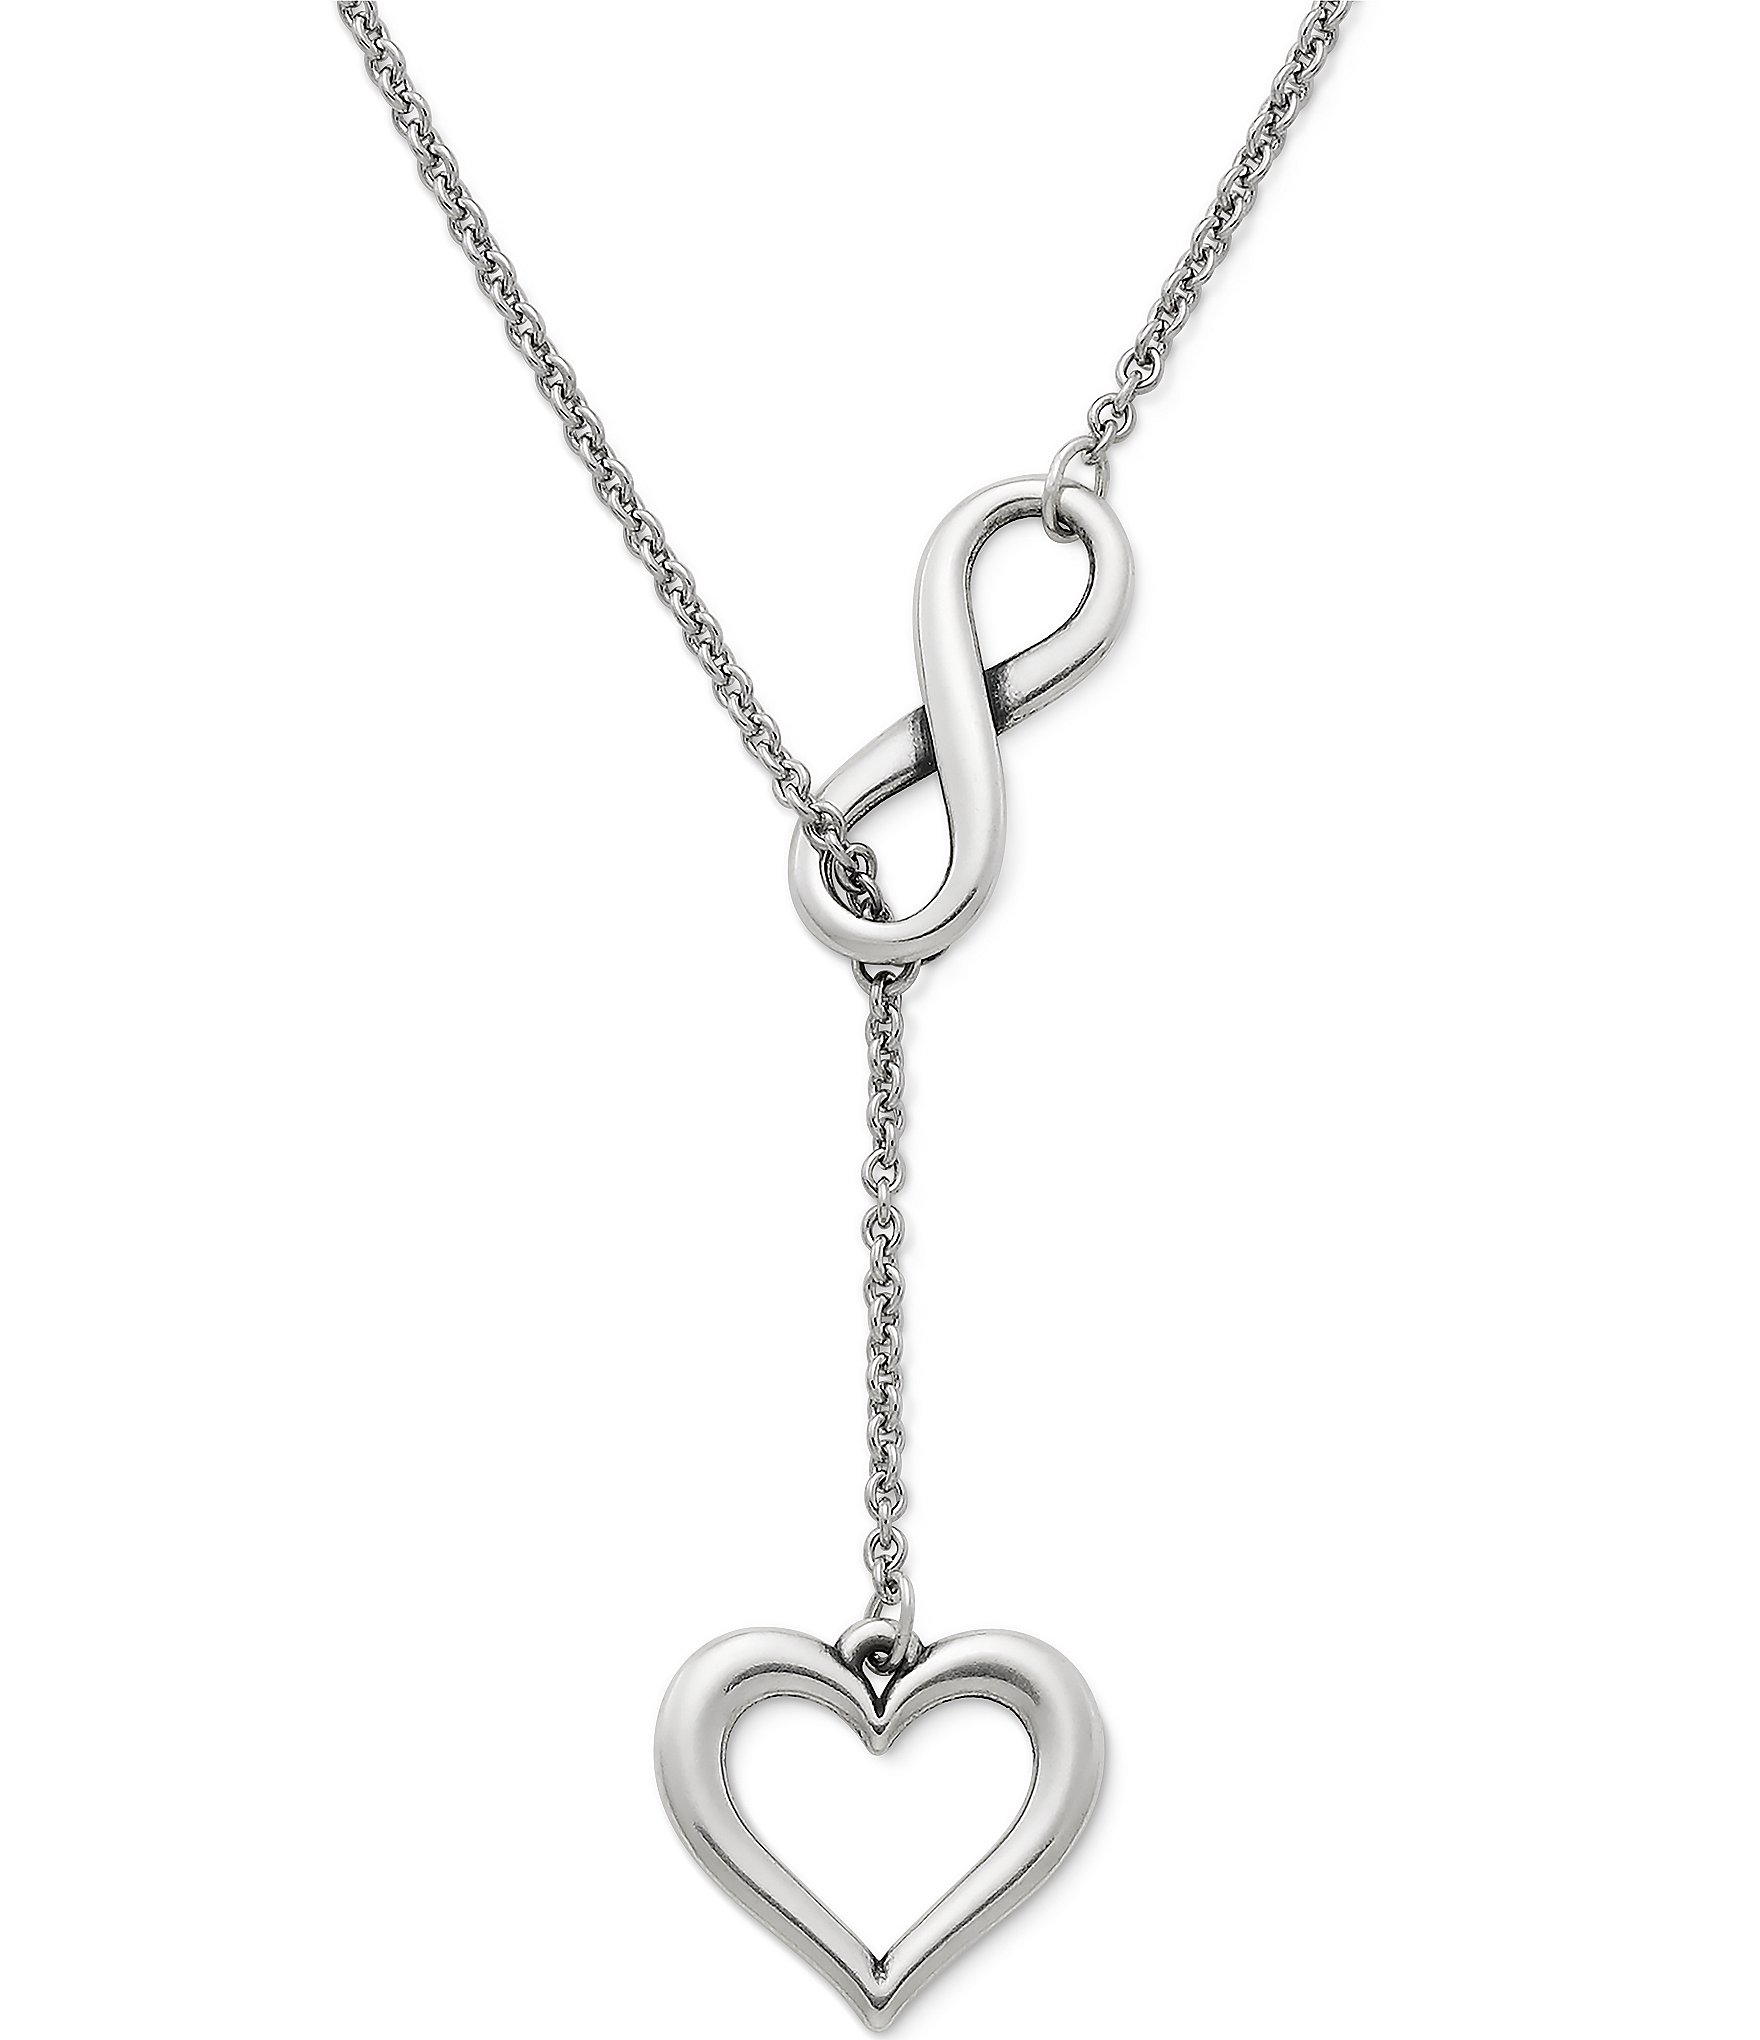 James Avery Mens Cross Necklace: James Avery Infinite Love Sterling Silver Necklace